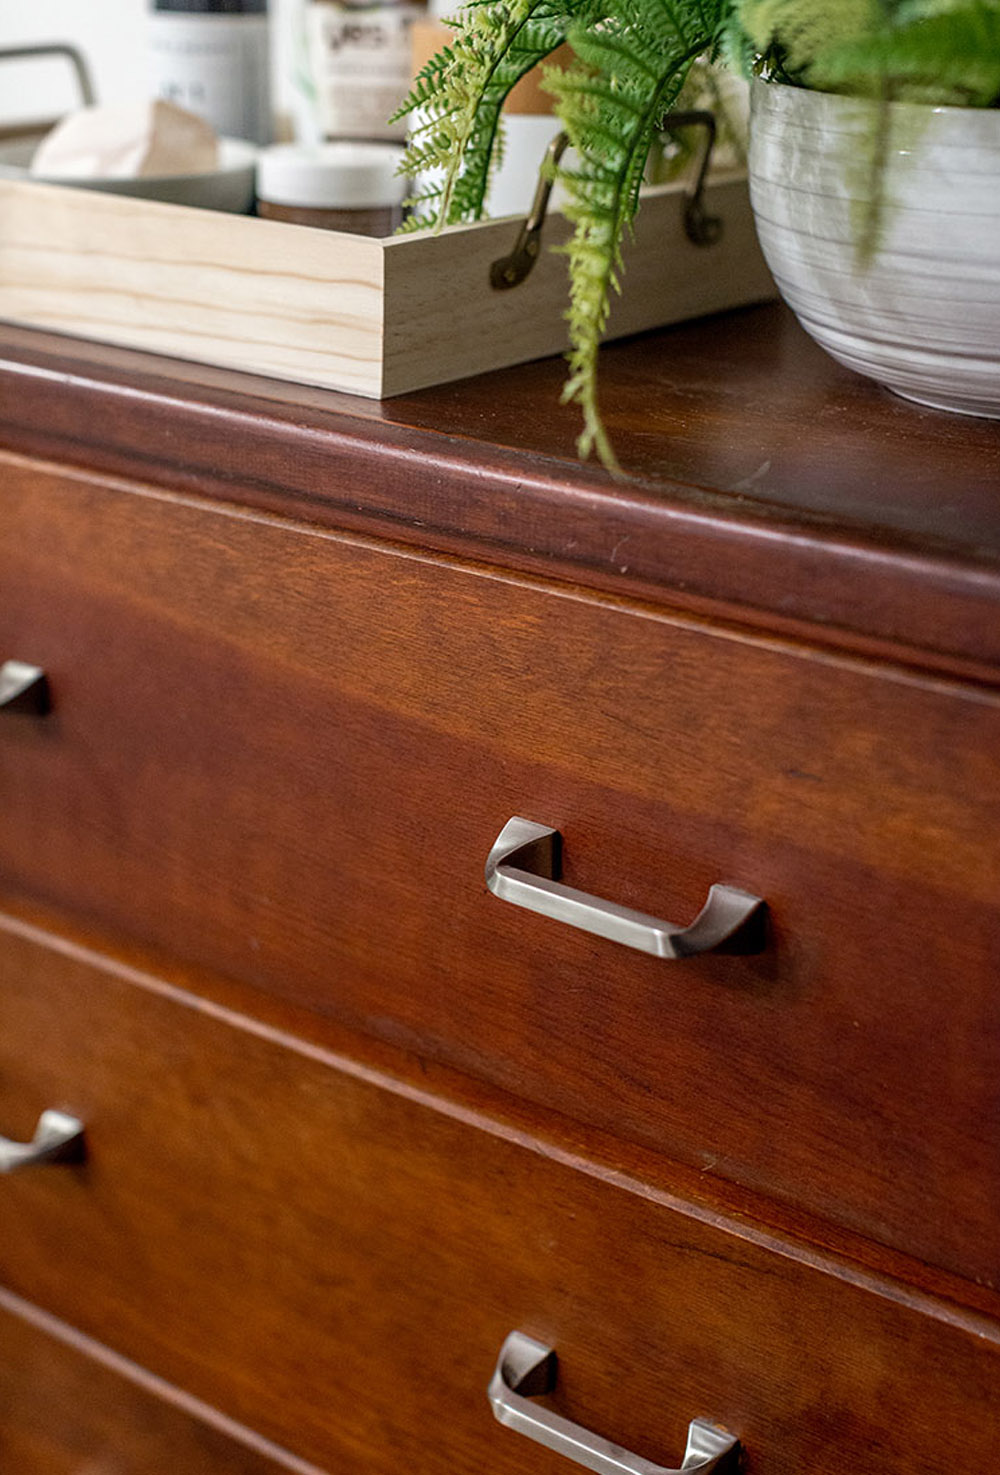 A wooden dresser with silver handles.